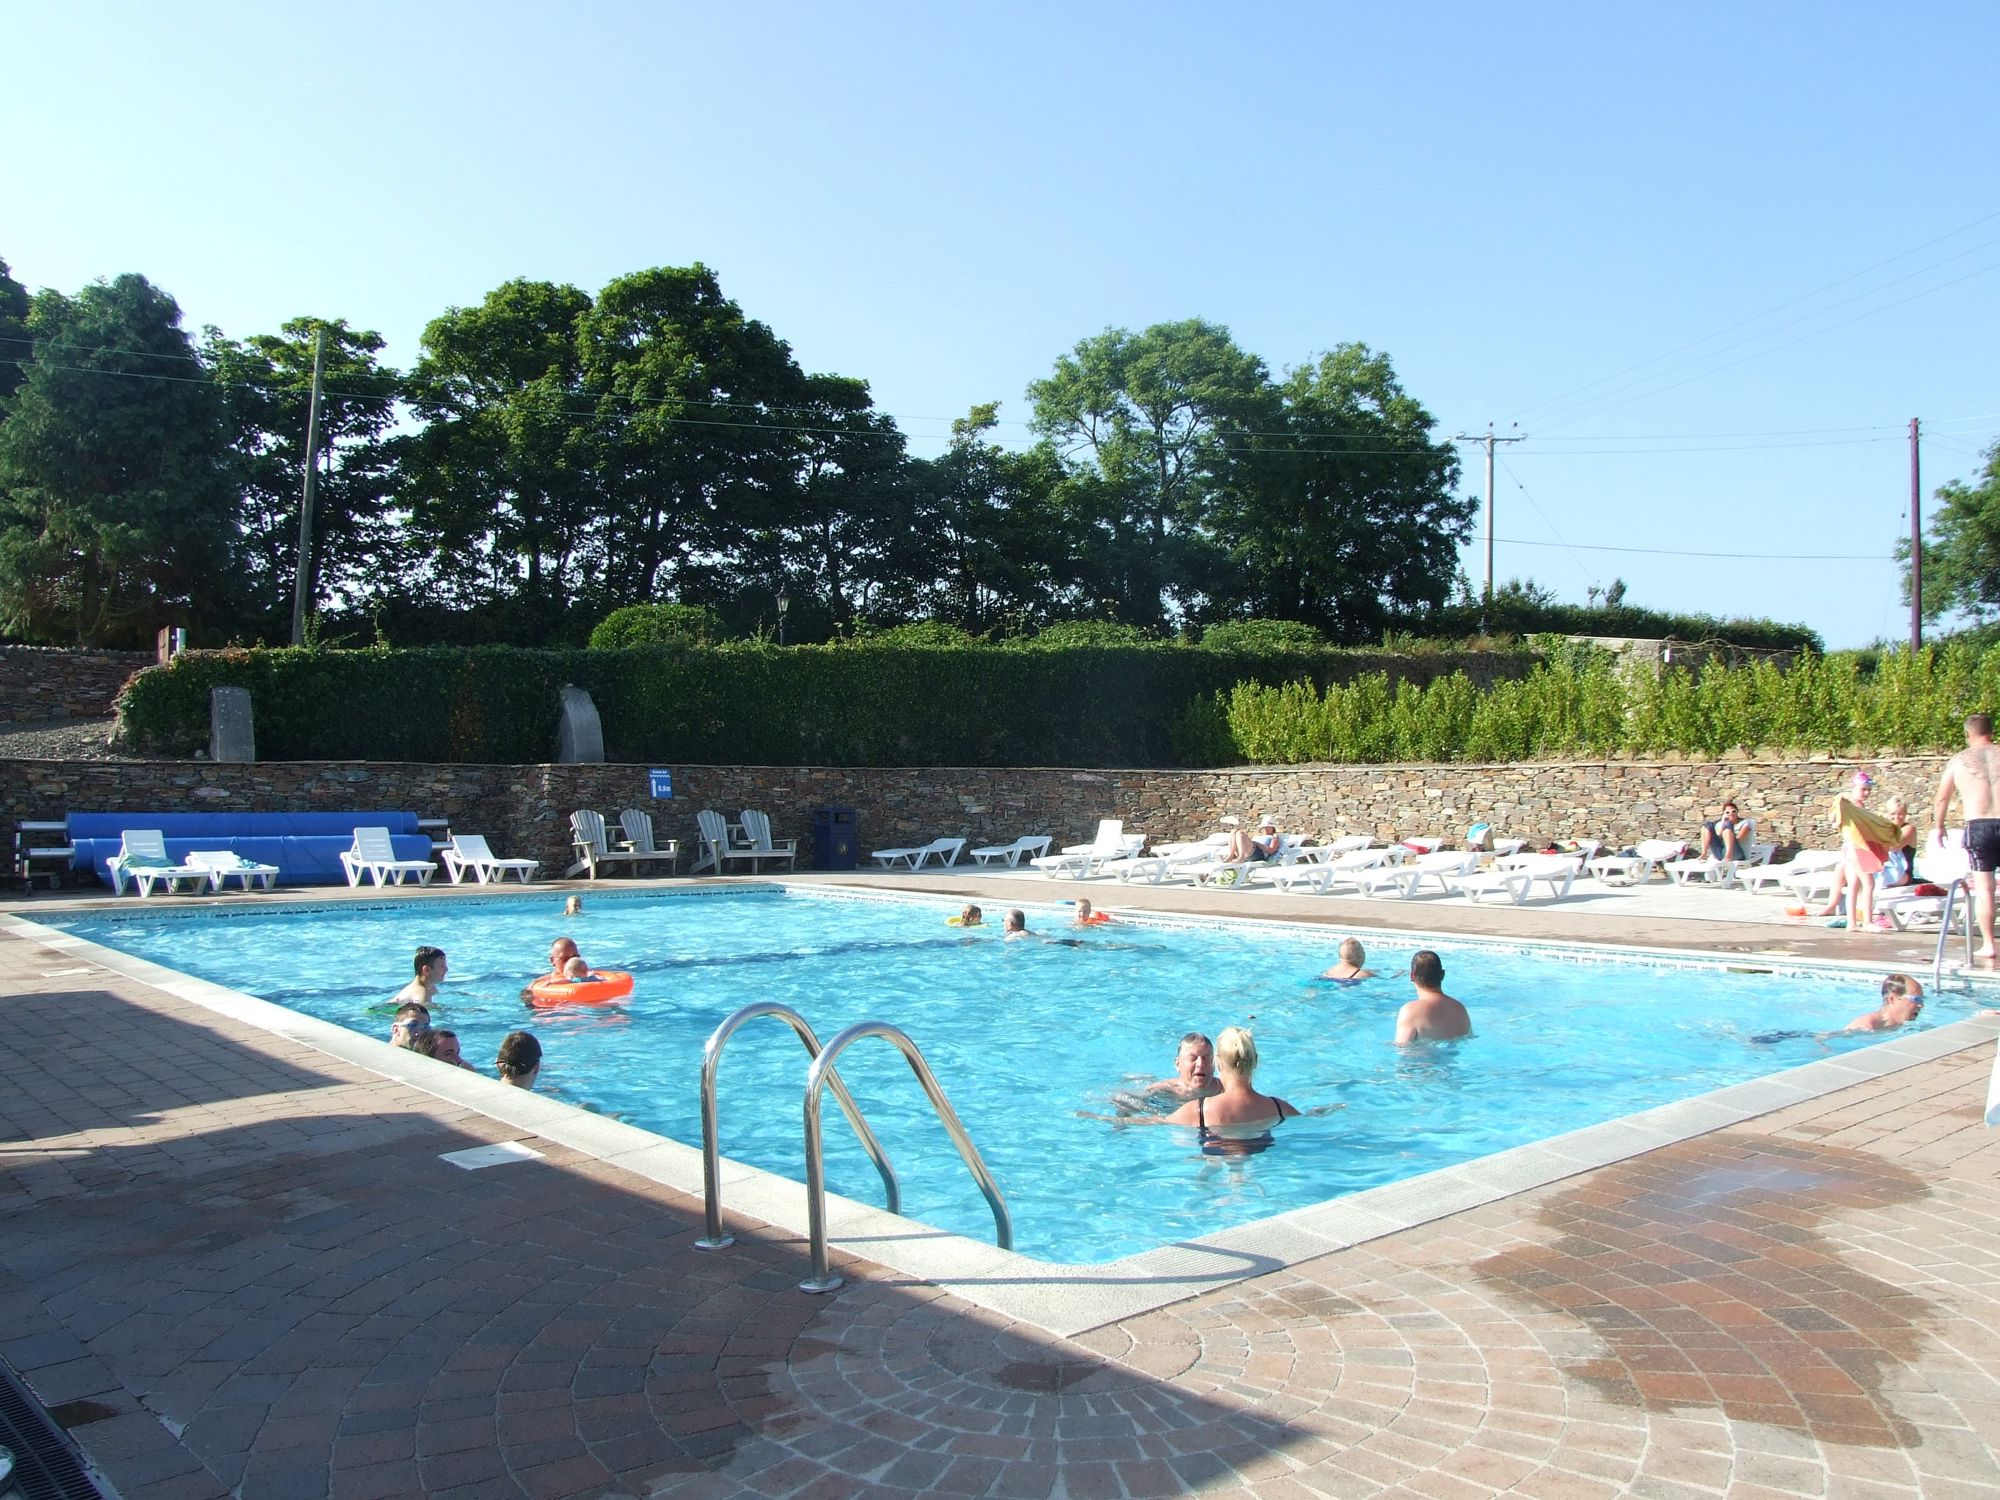 Tregarton Park Swimming Pool